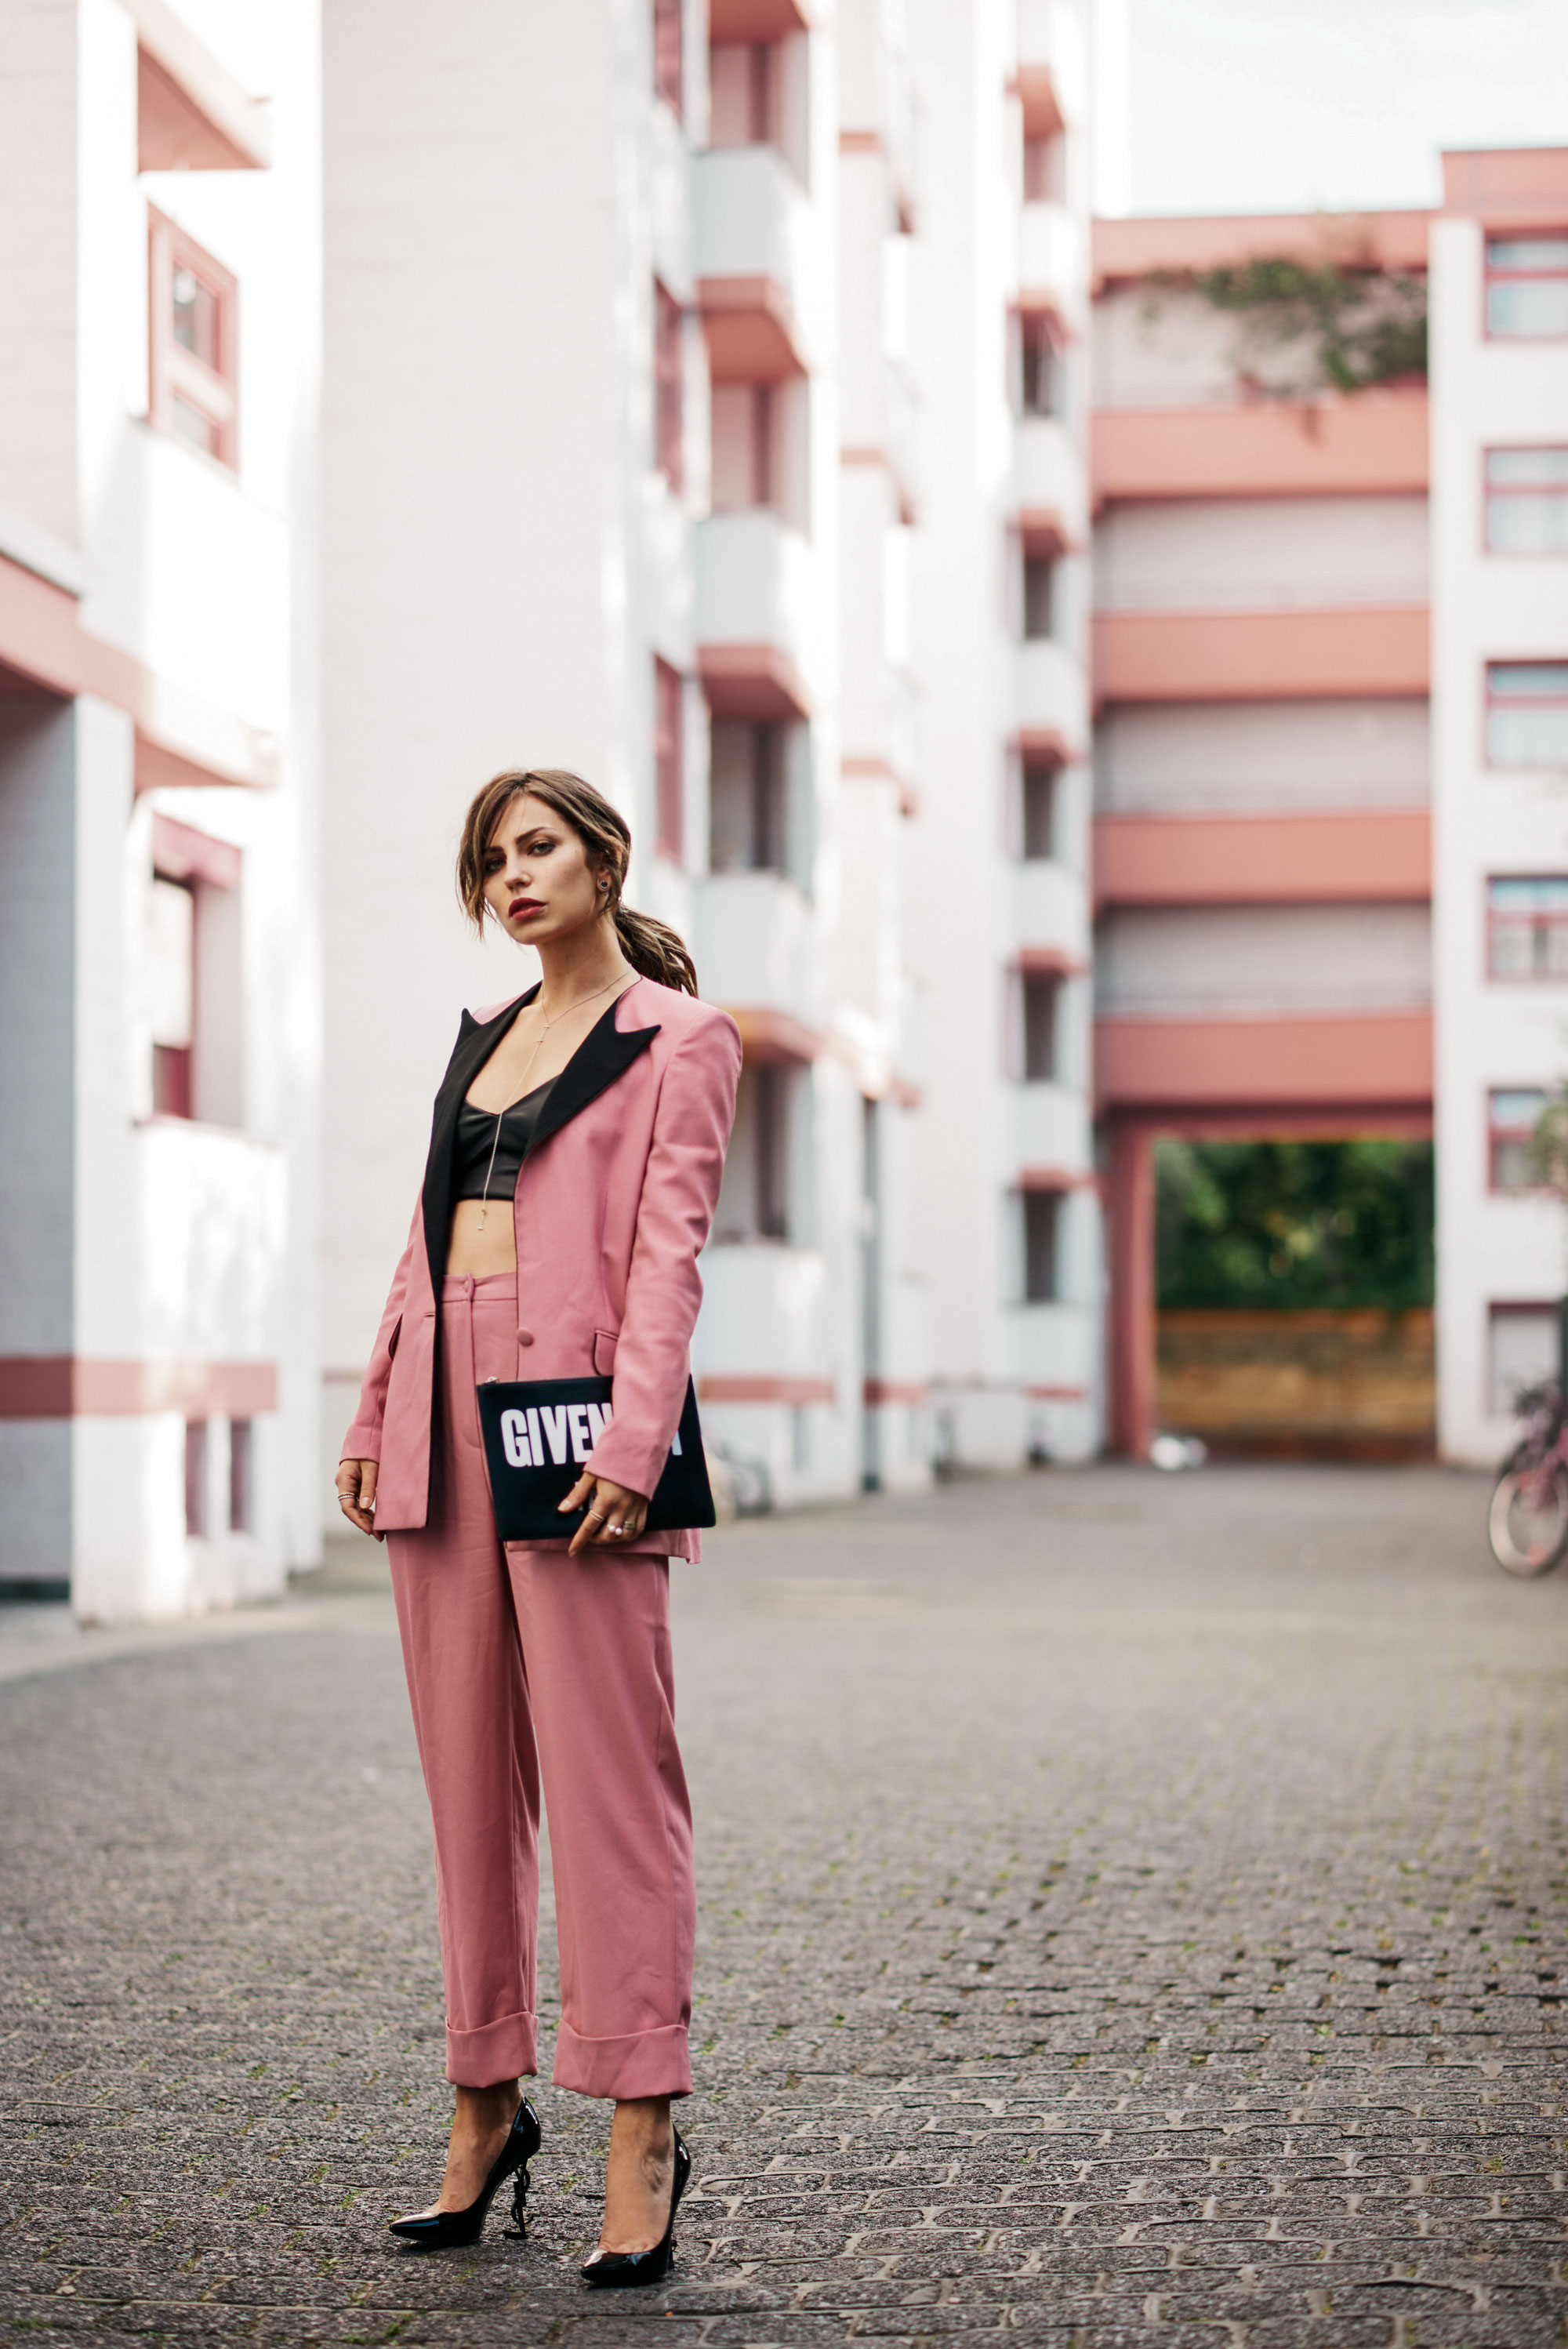 Что такое поколение вечно-розового? | Поколение Y | Hosenanzug in Rosa, Pumps von YSL mit Logo und Givenchy Logo Clutch | #Girlboss | Blogger Editorial Shooting